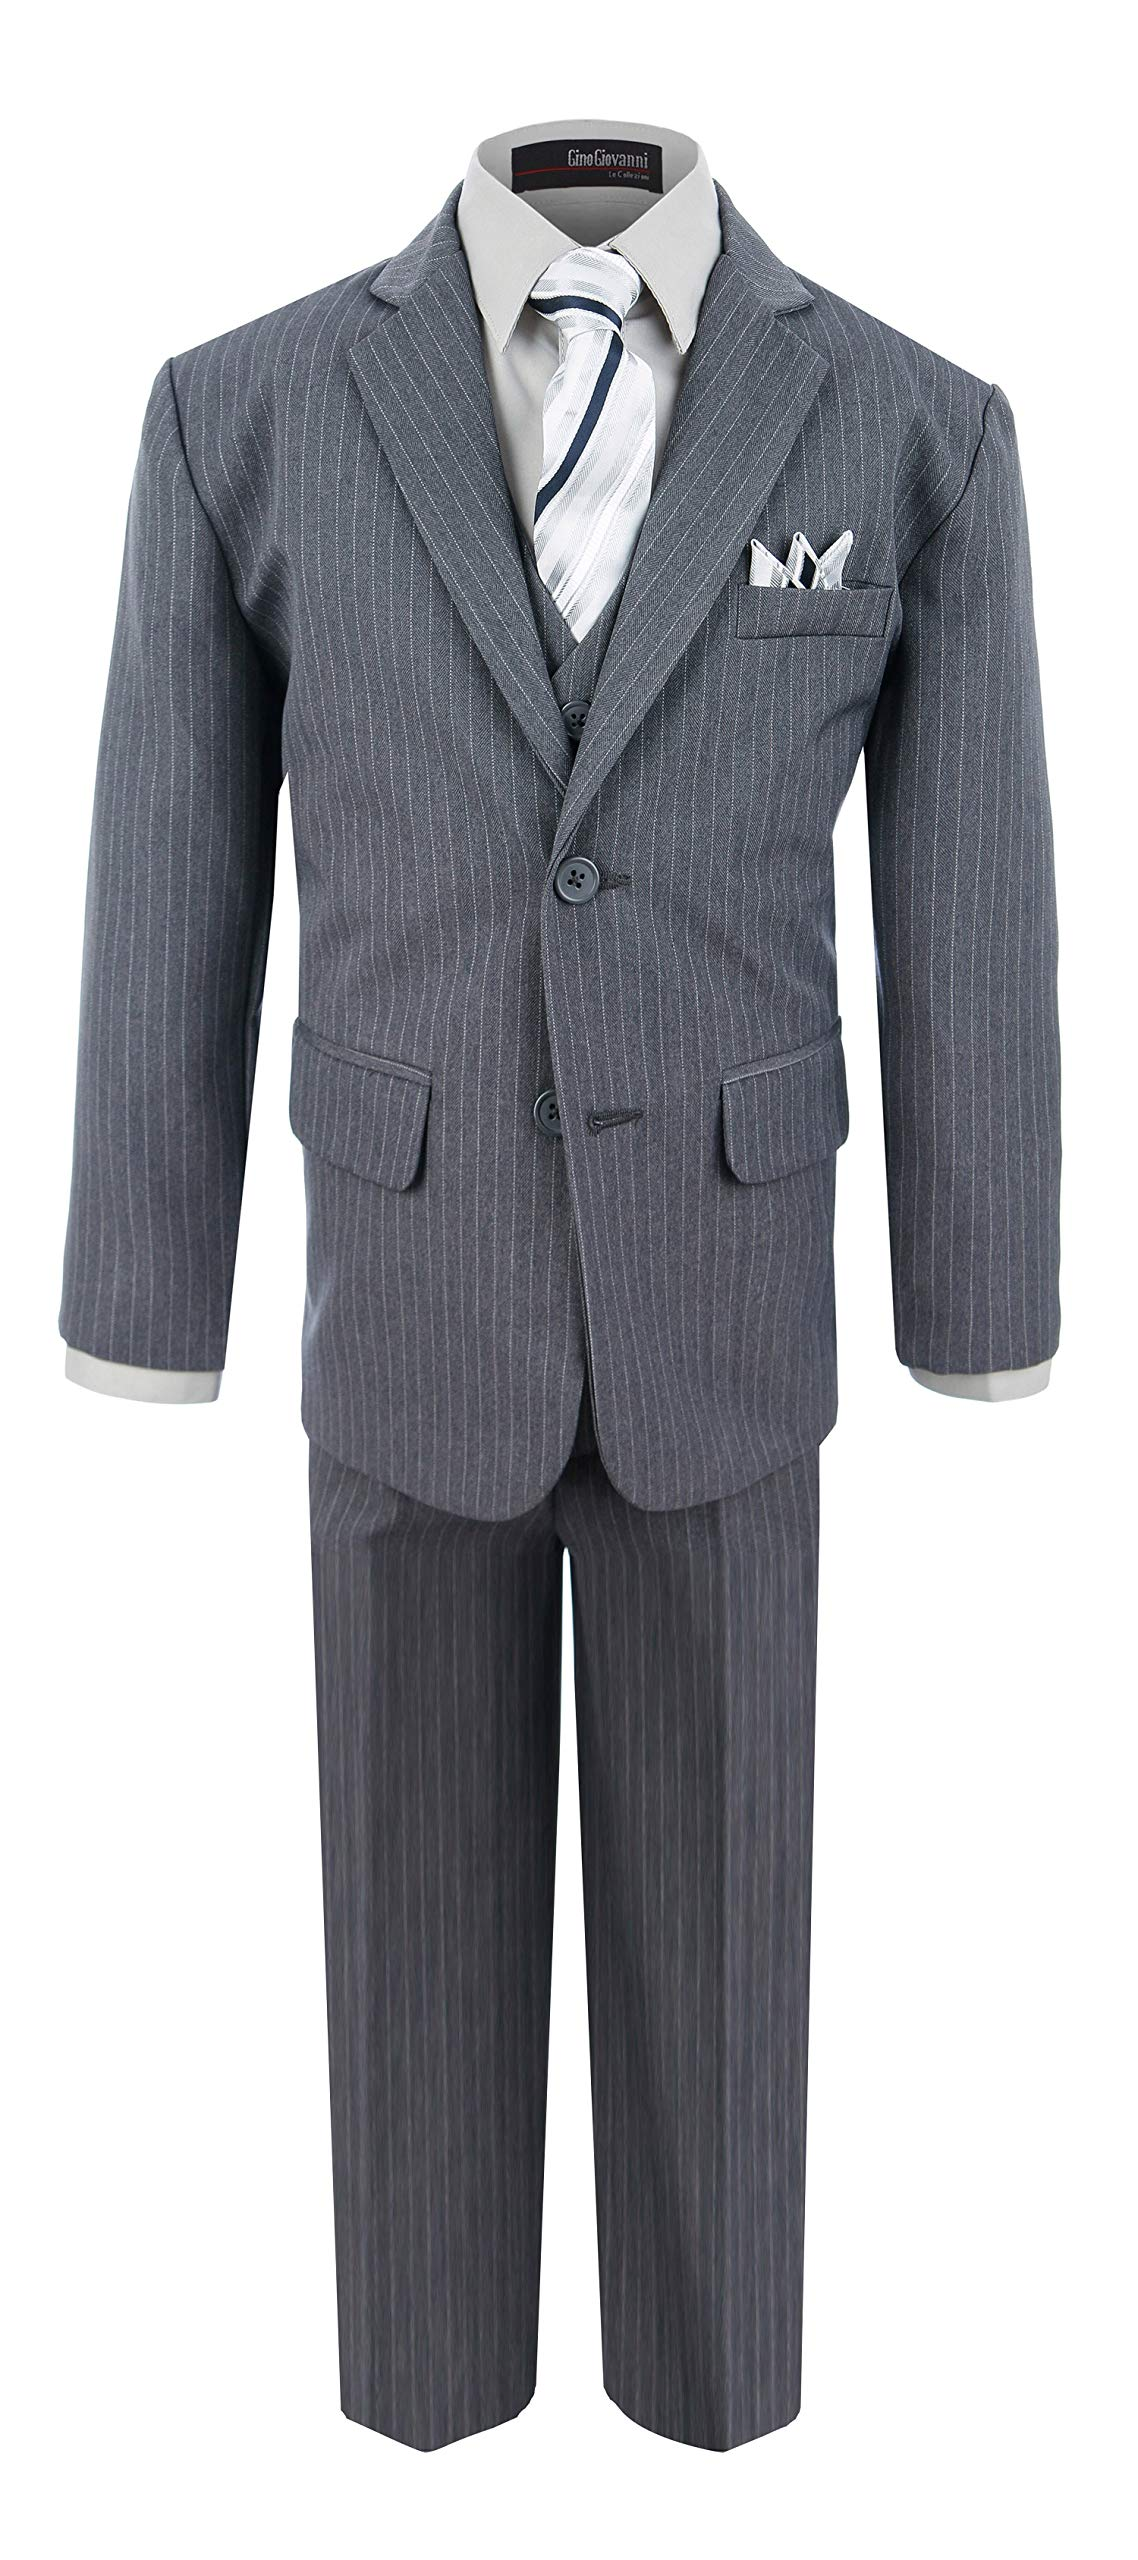 Boy's Formal Pinstripe Dresswear Suit Set #G220 (10, Gray)